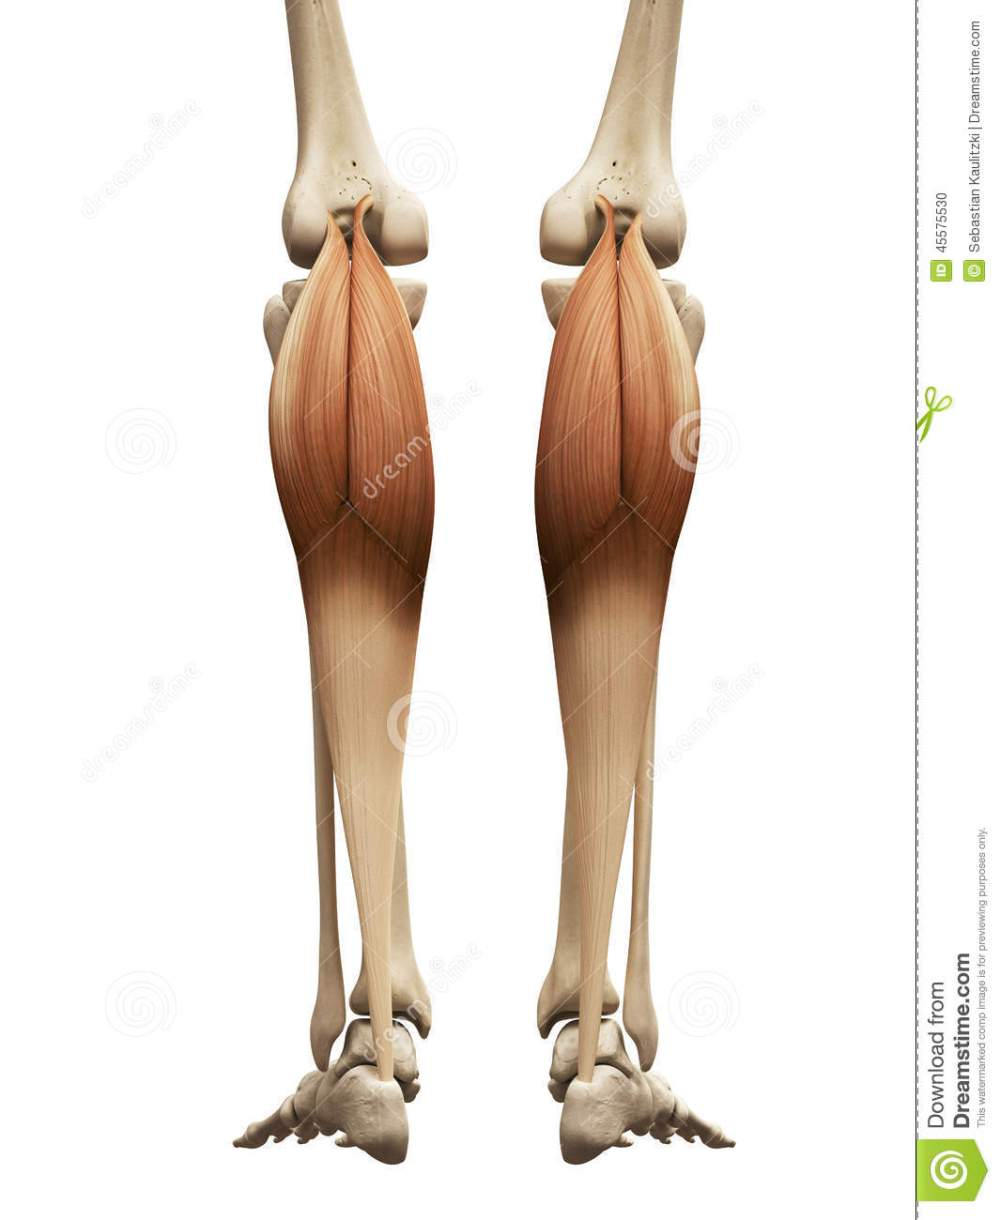 medium resolution of human muscle anatomy the gastrocnemius